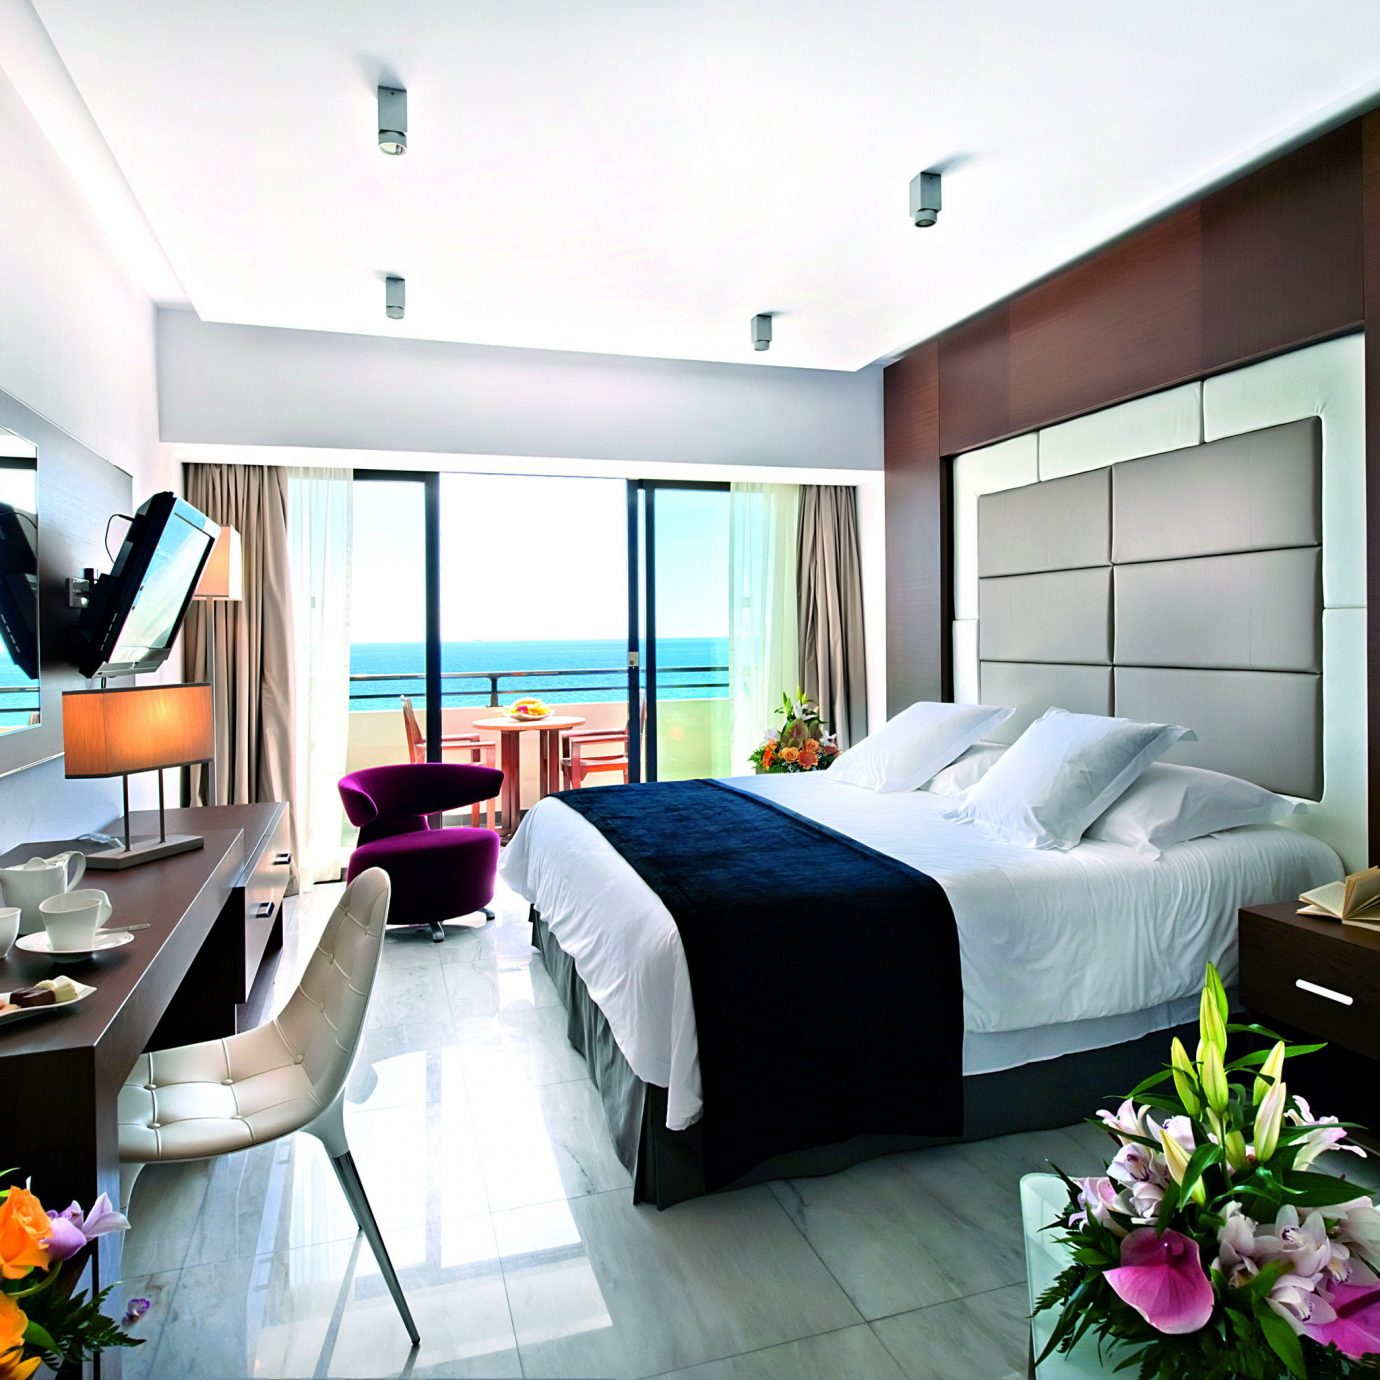 Balcony Beachfront Bedroom Luxury Modern Romantic Scenic views Suite property condominium living room flower home